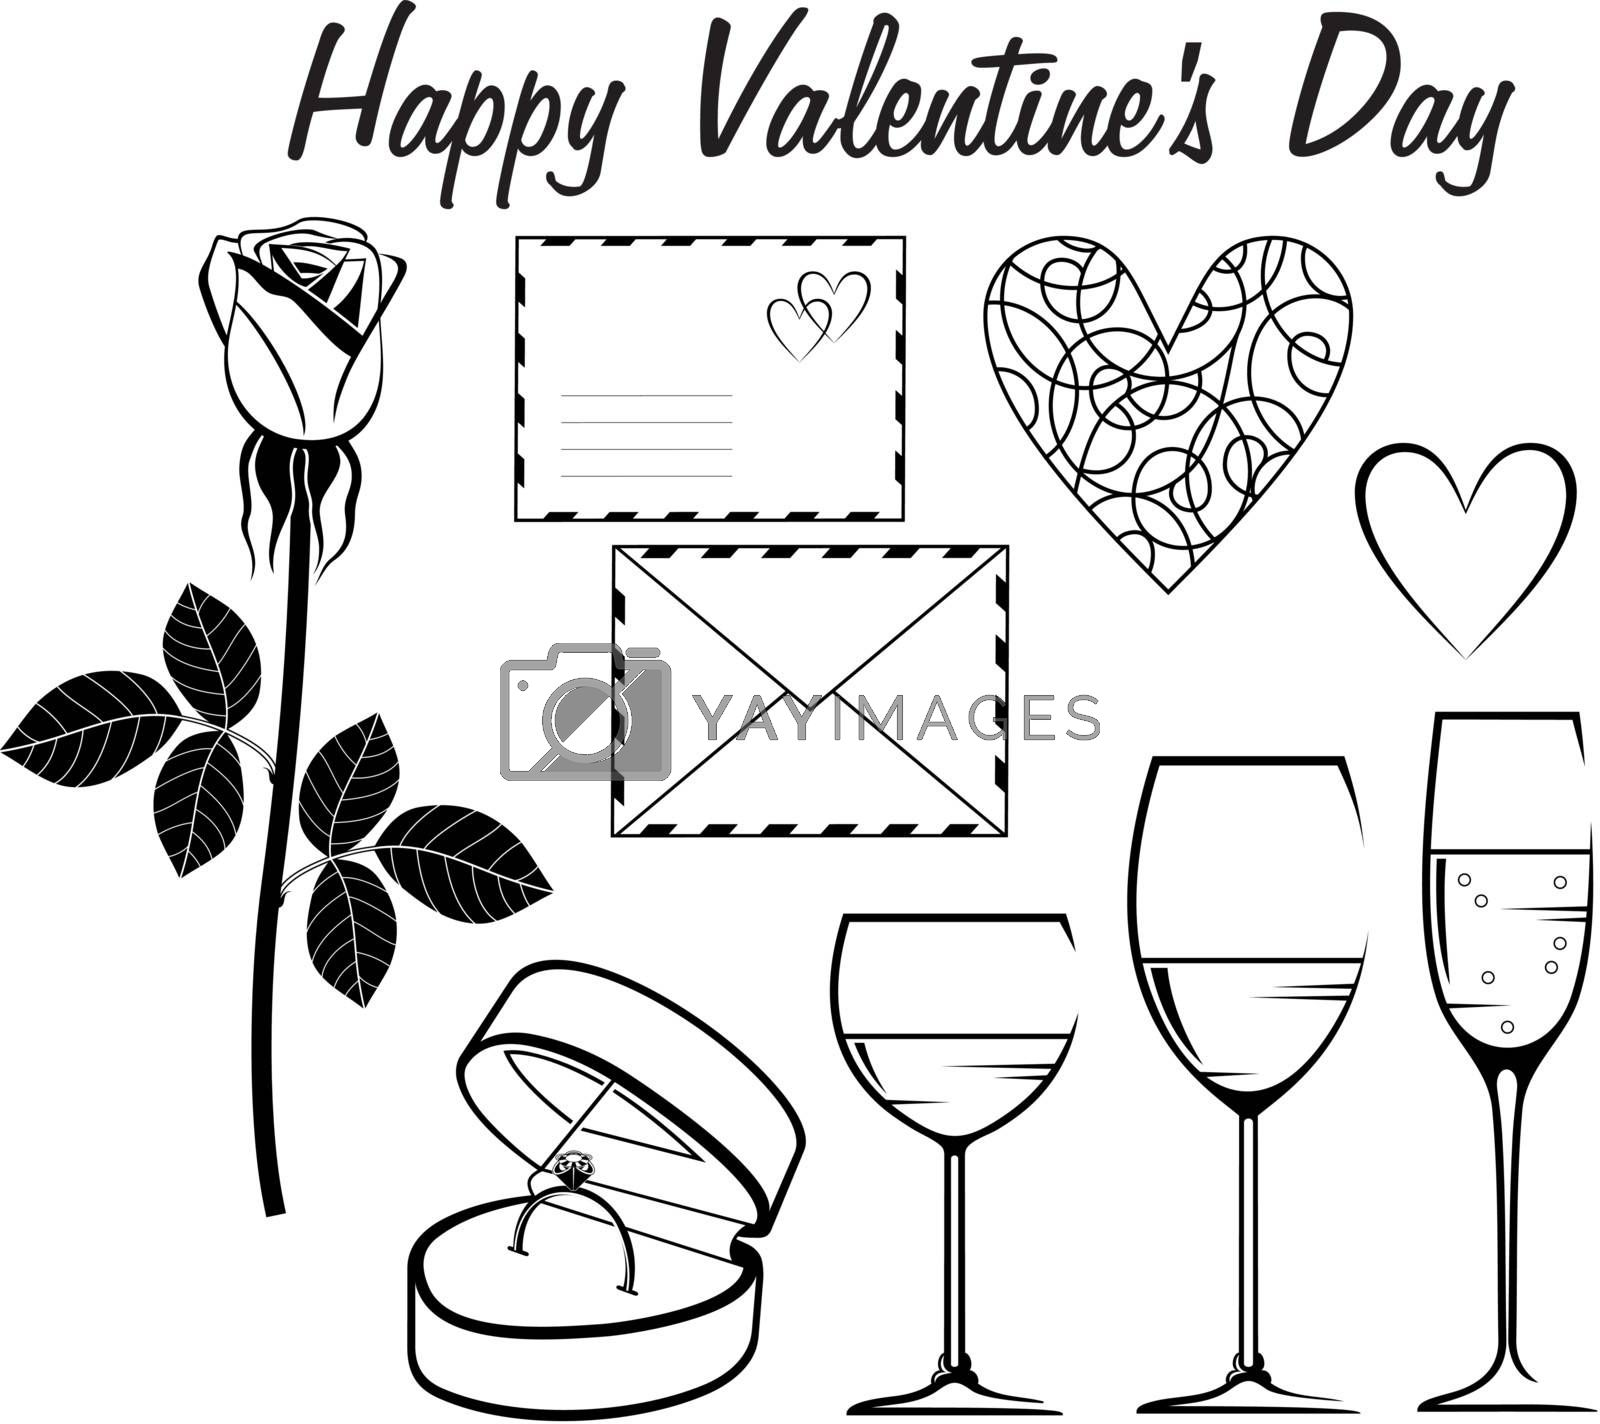 Image set for a card for Valentine's Day in black and white.